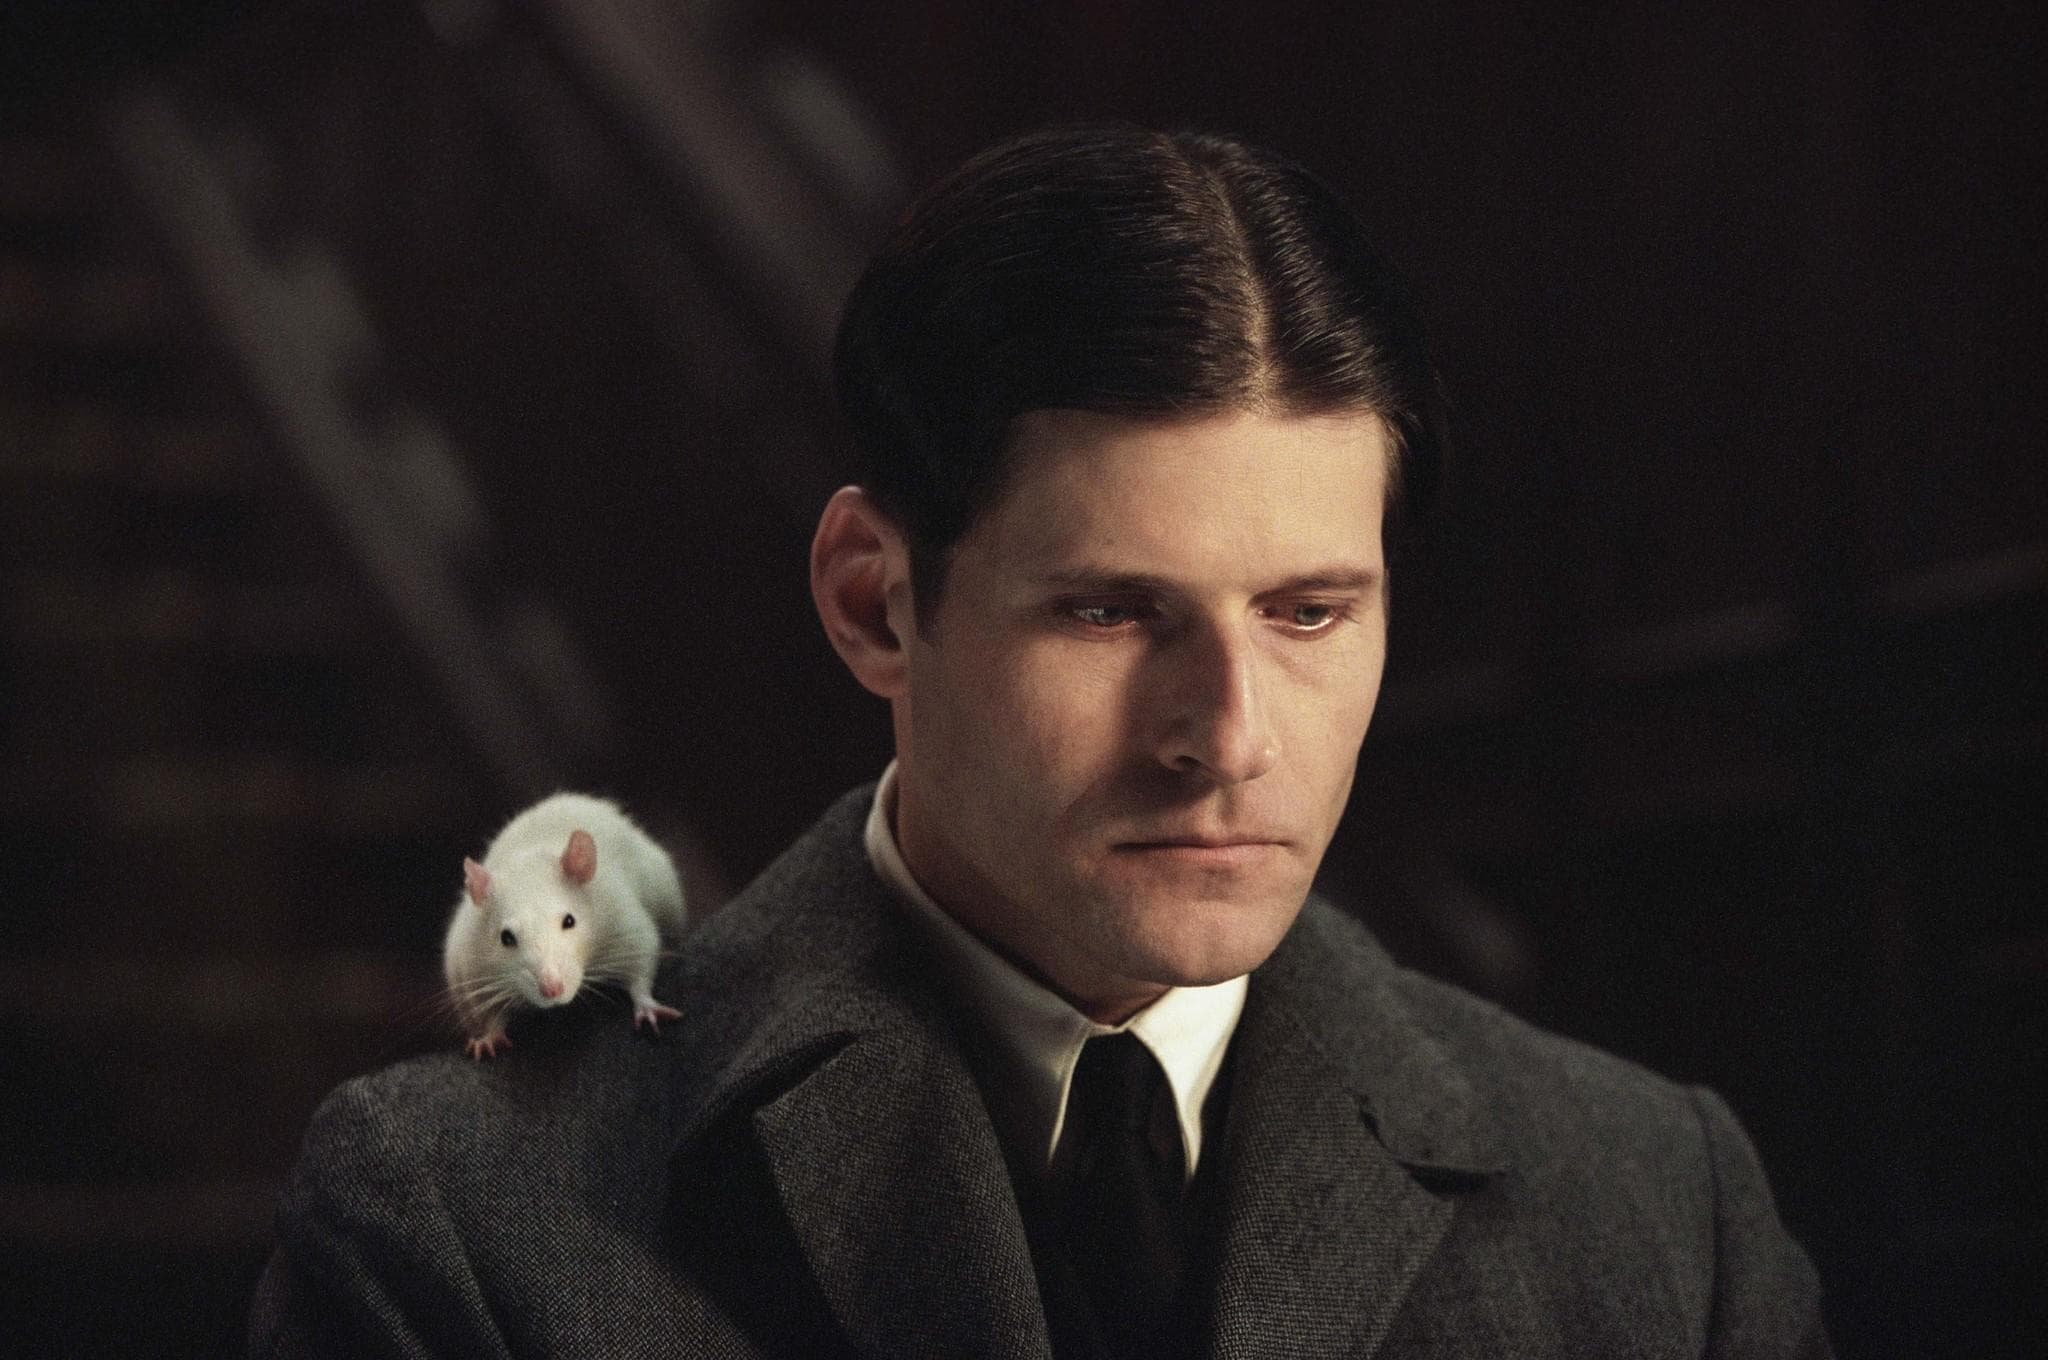 Crispin Glover Screensavers